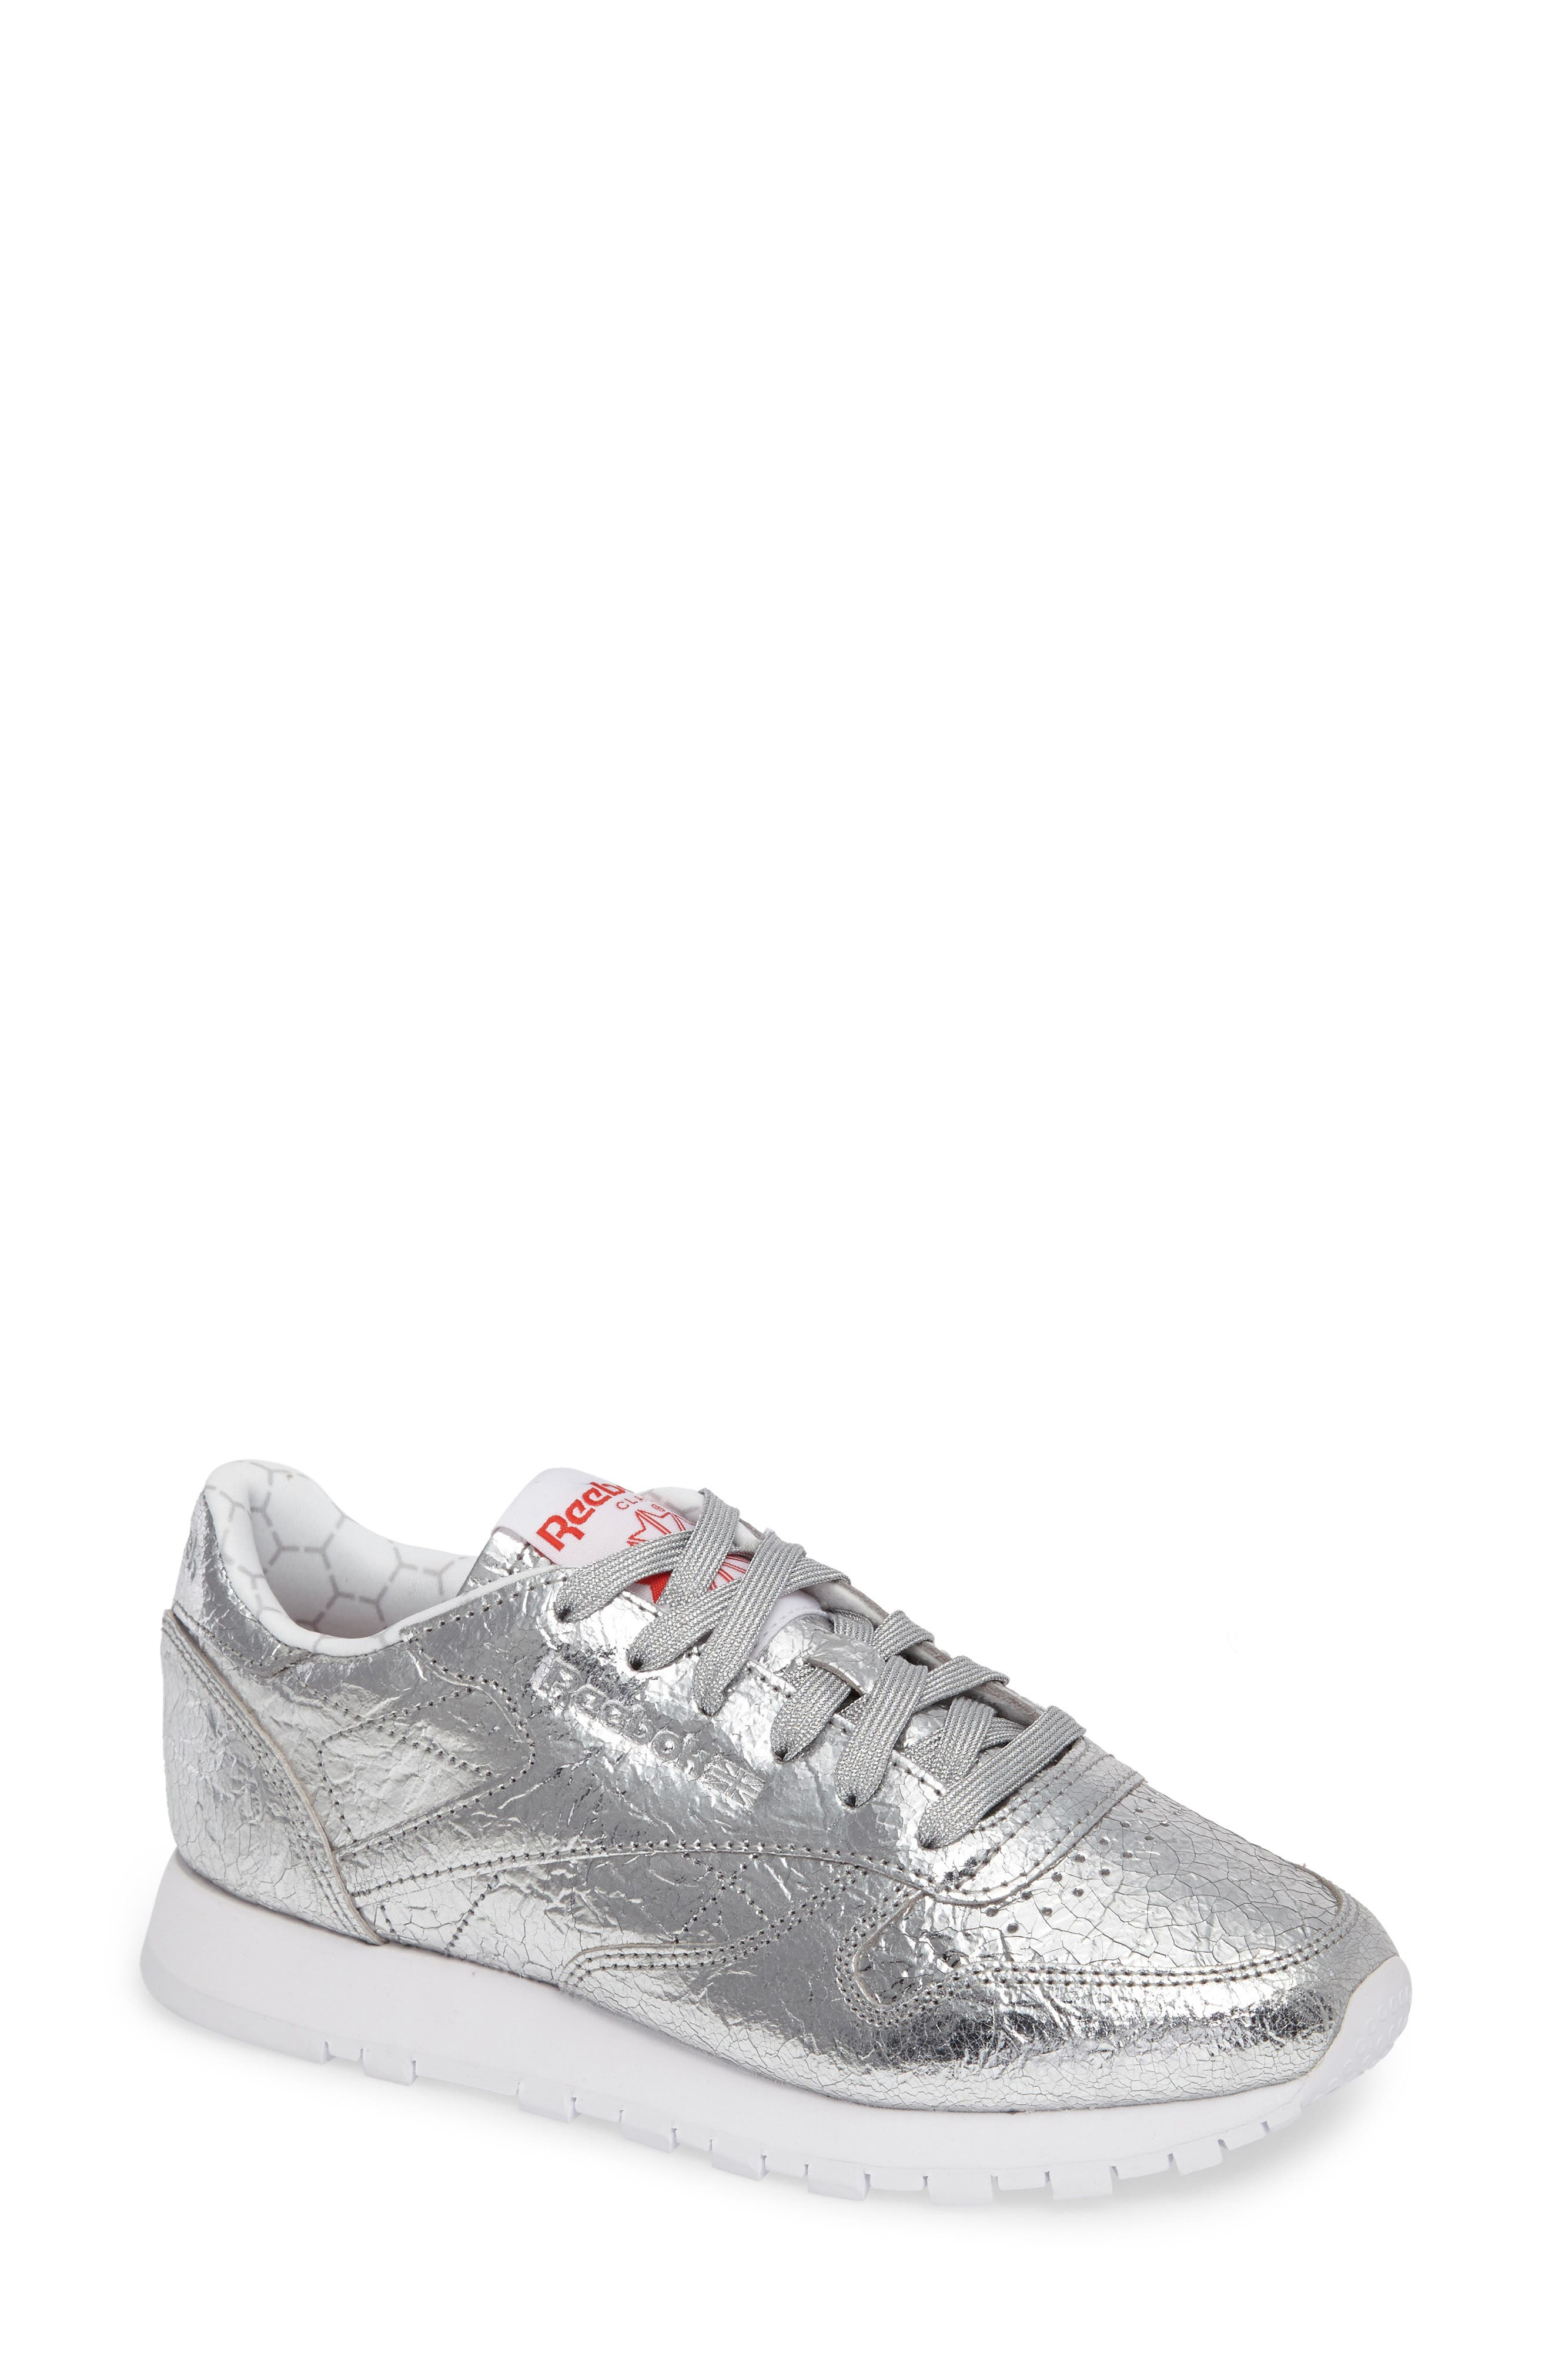 Classic Leather HD Foil Sneaker,                         Main,                         color, Silver/ Grey/ Red/ White